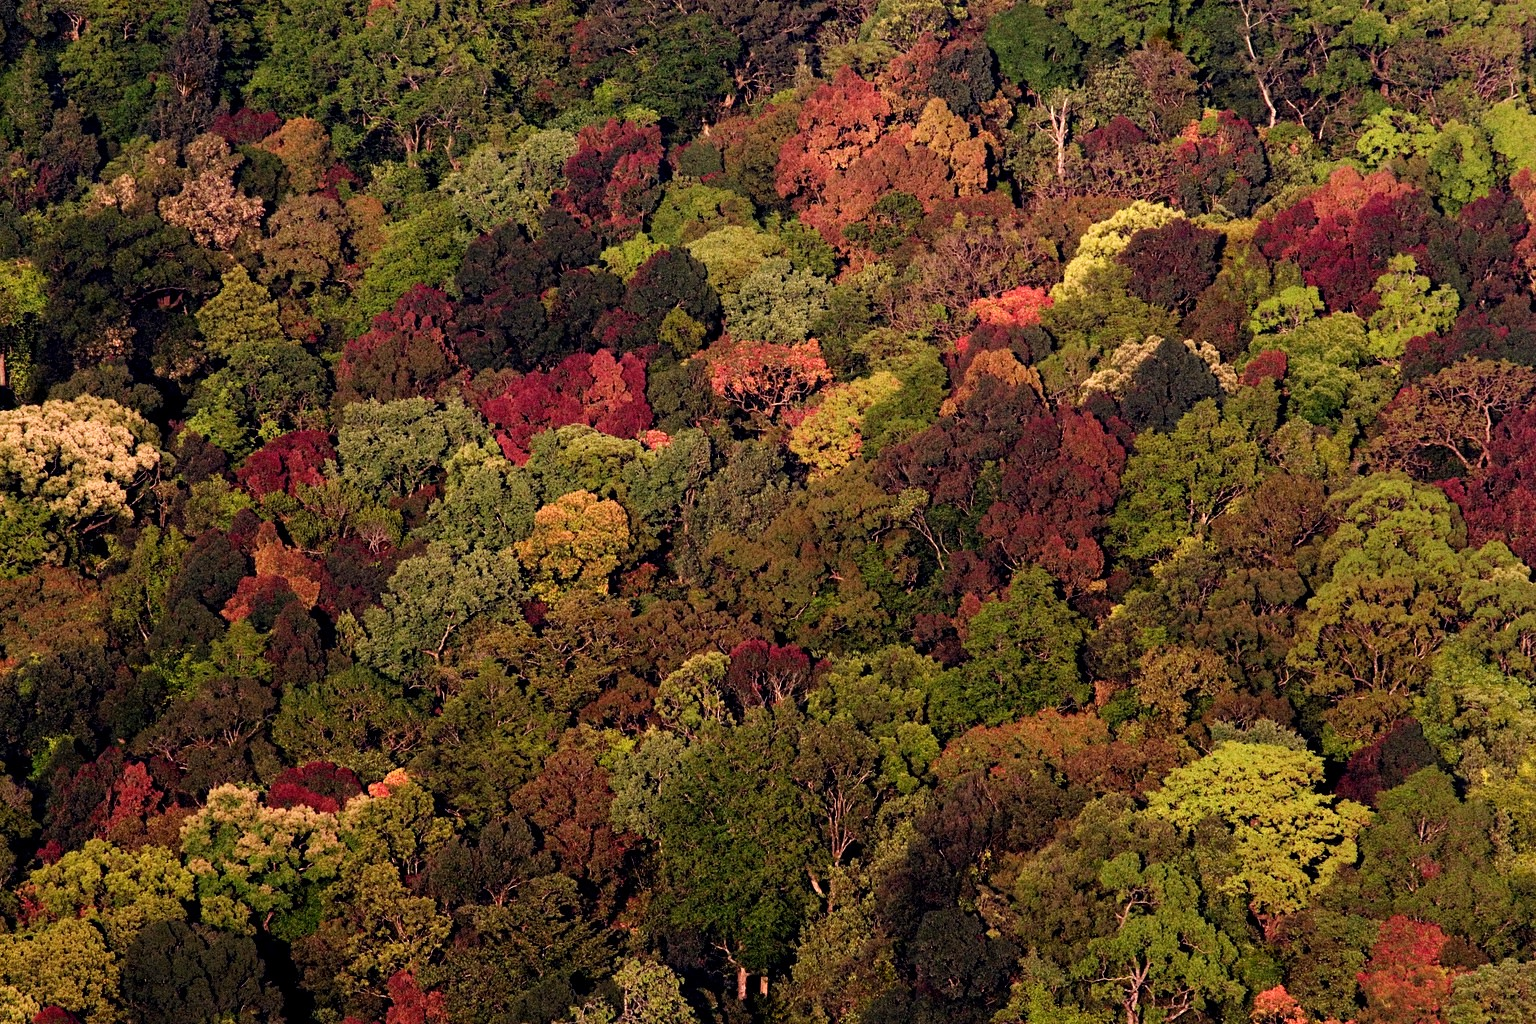 Under this riot of colours of Silent Valley National Park lies a mind-boggling diversity of living organisms. Photo: NP Jayan